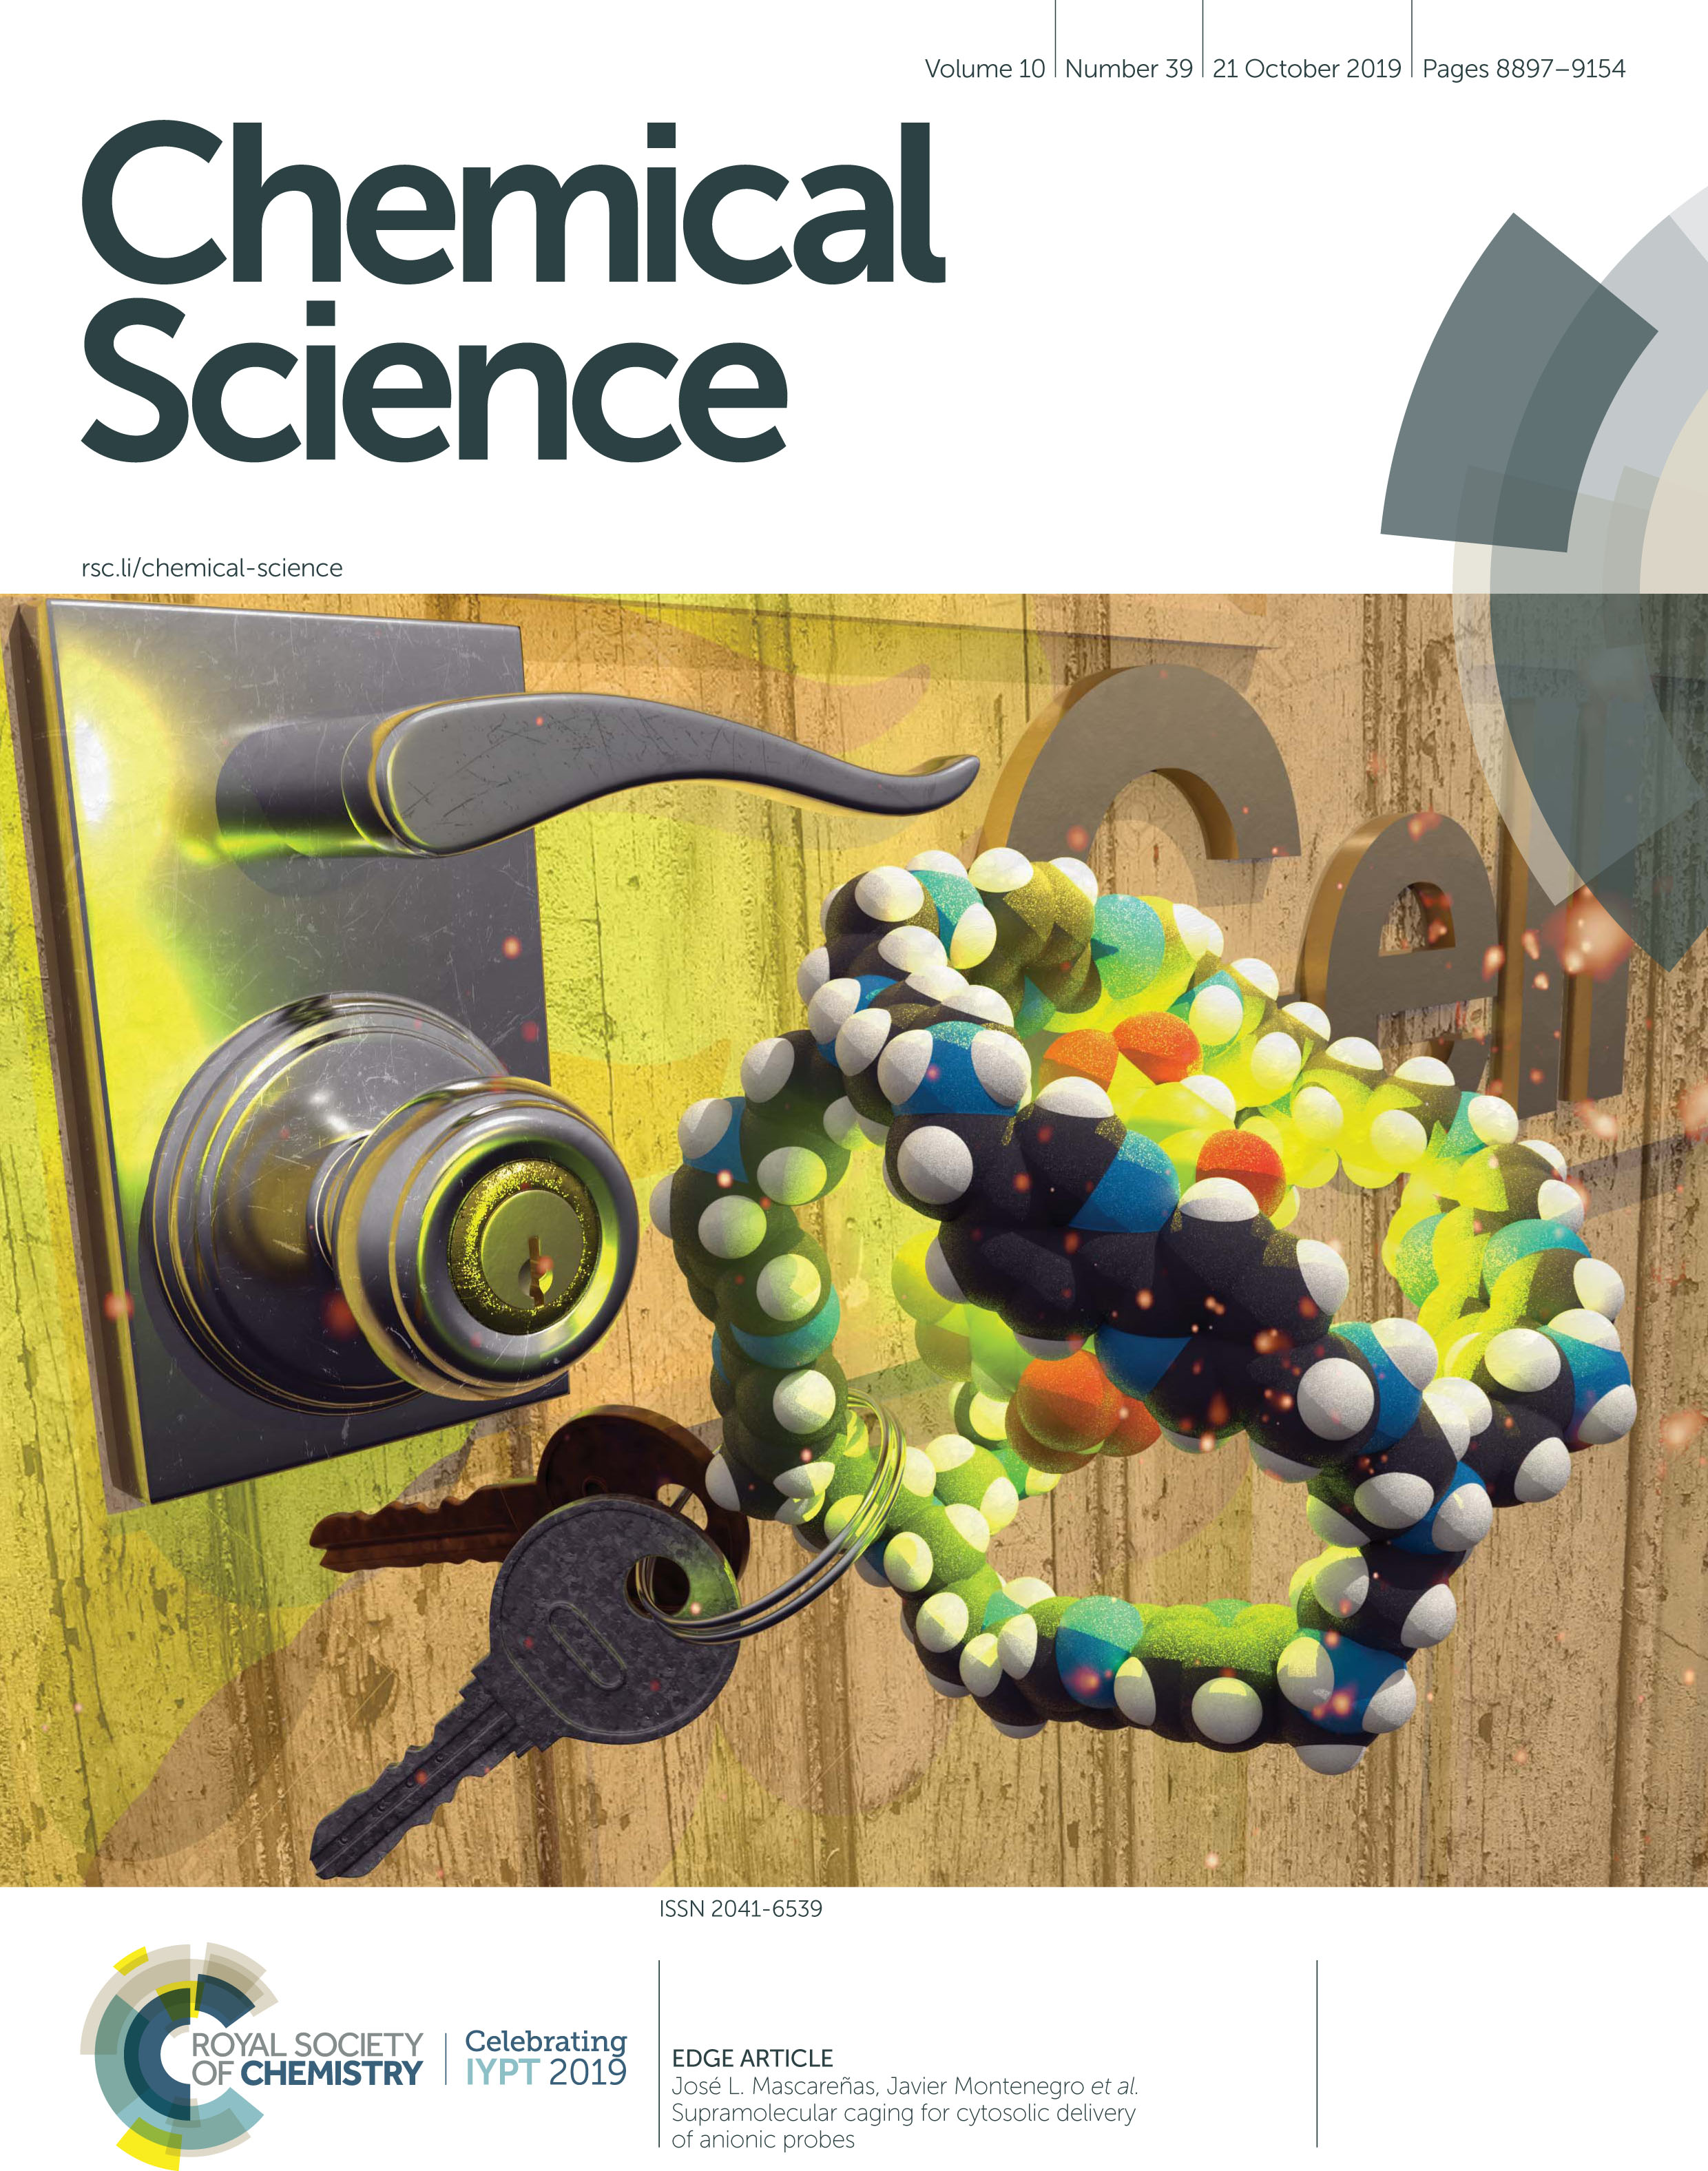 Supramolecular Caging for Cytosolic Delivery of Anionic Probes